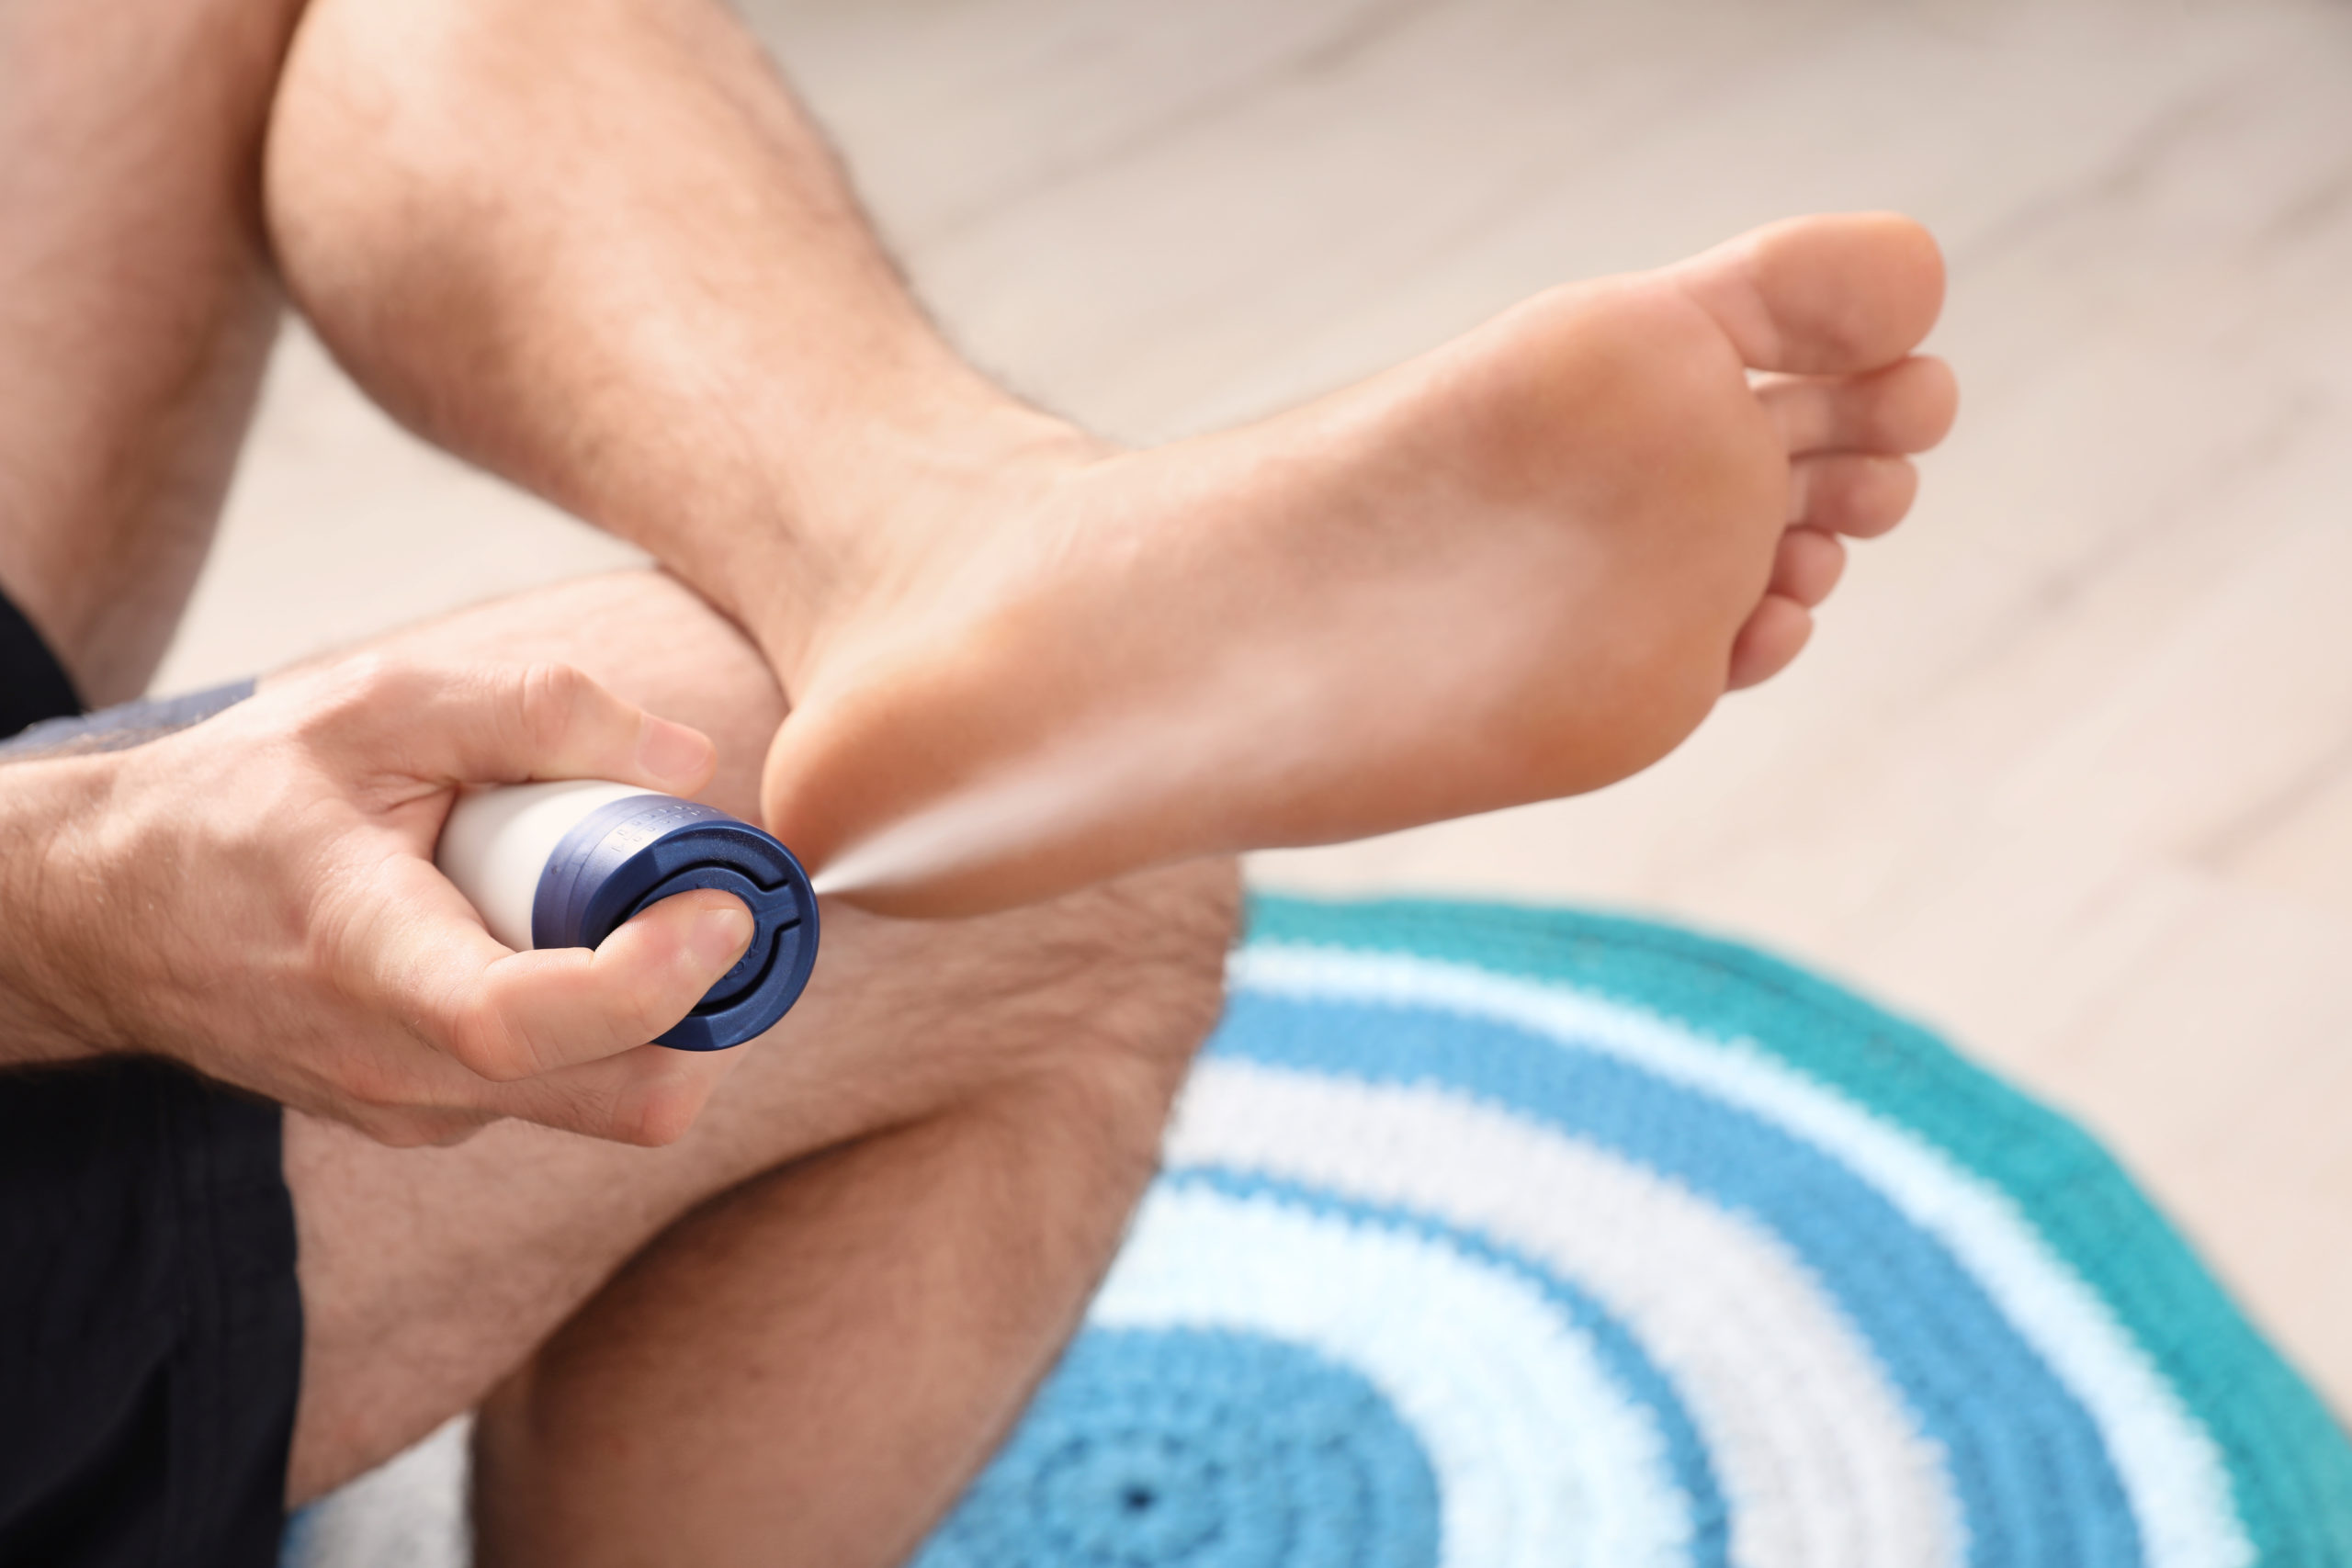 Excessive feet sweating